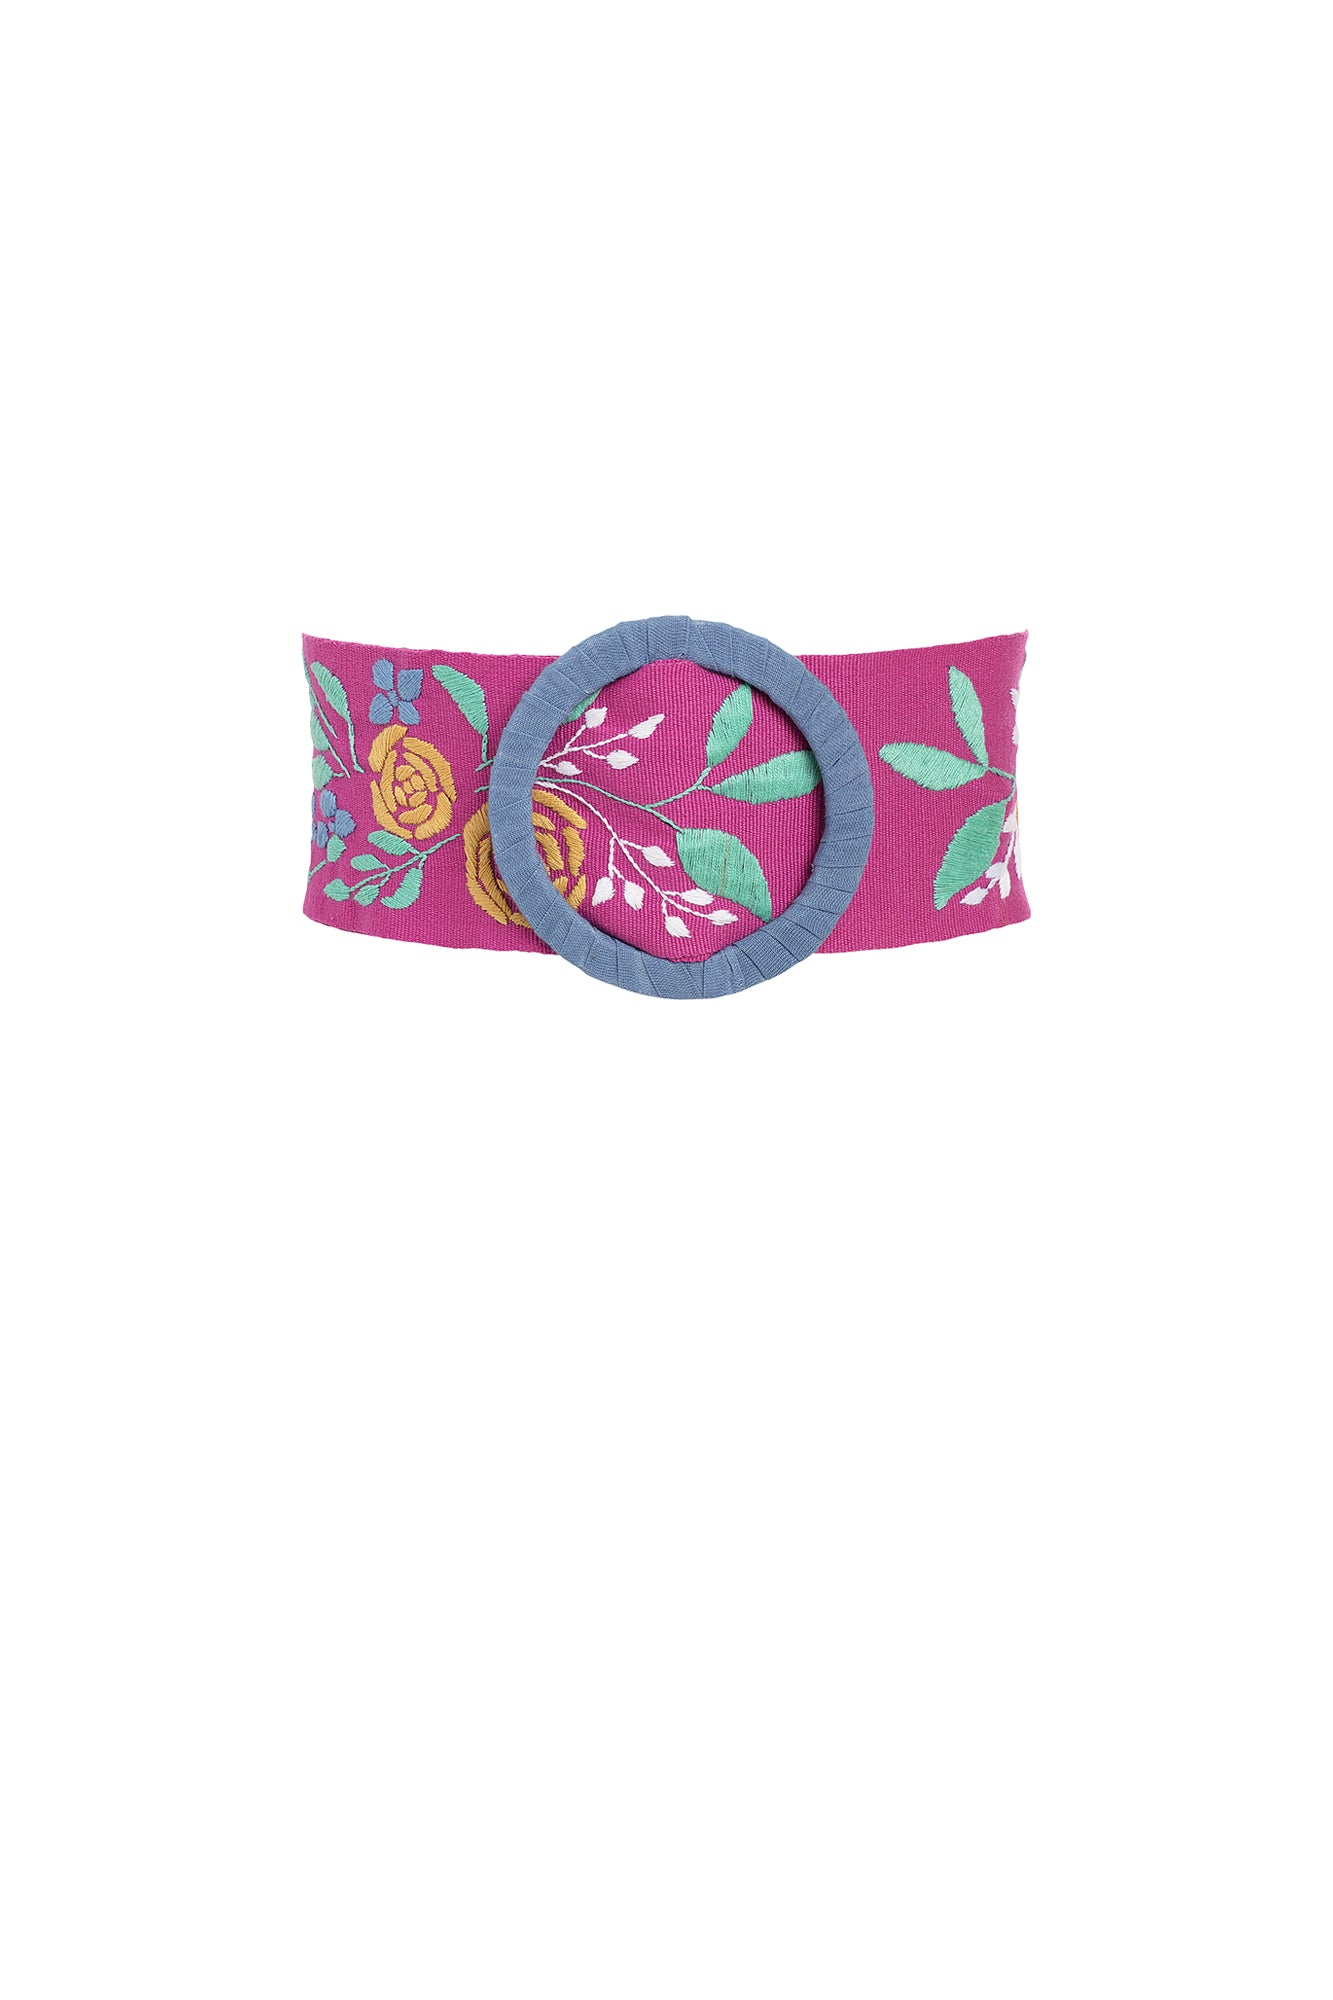 Carolina K Alicia Belt Wild Rose Peonies